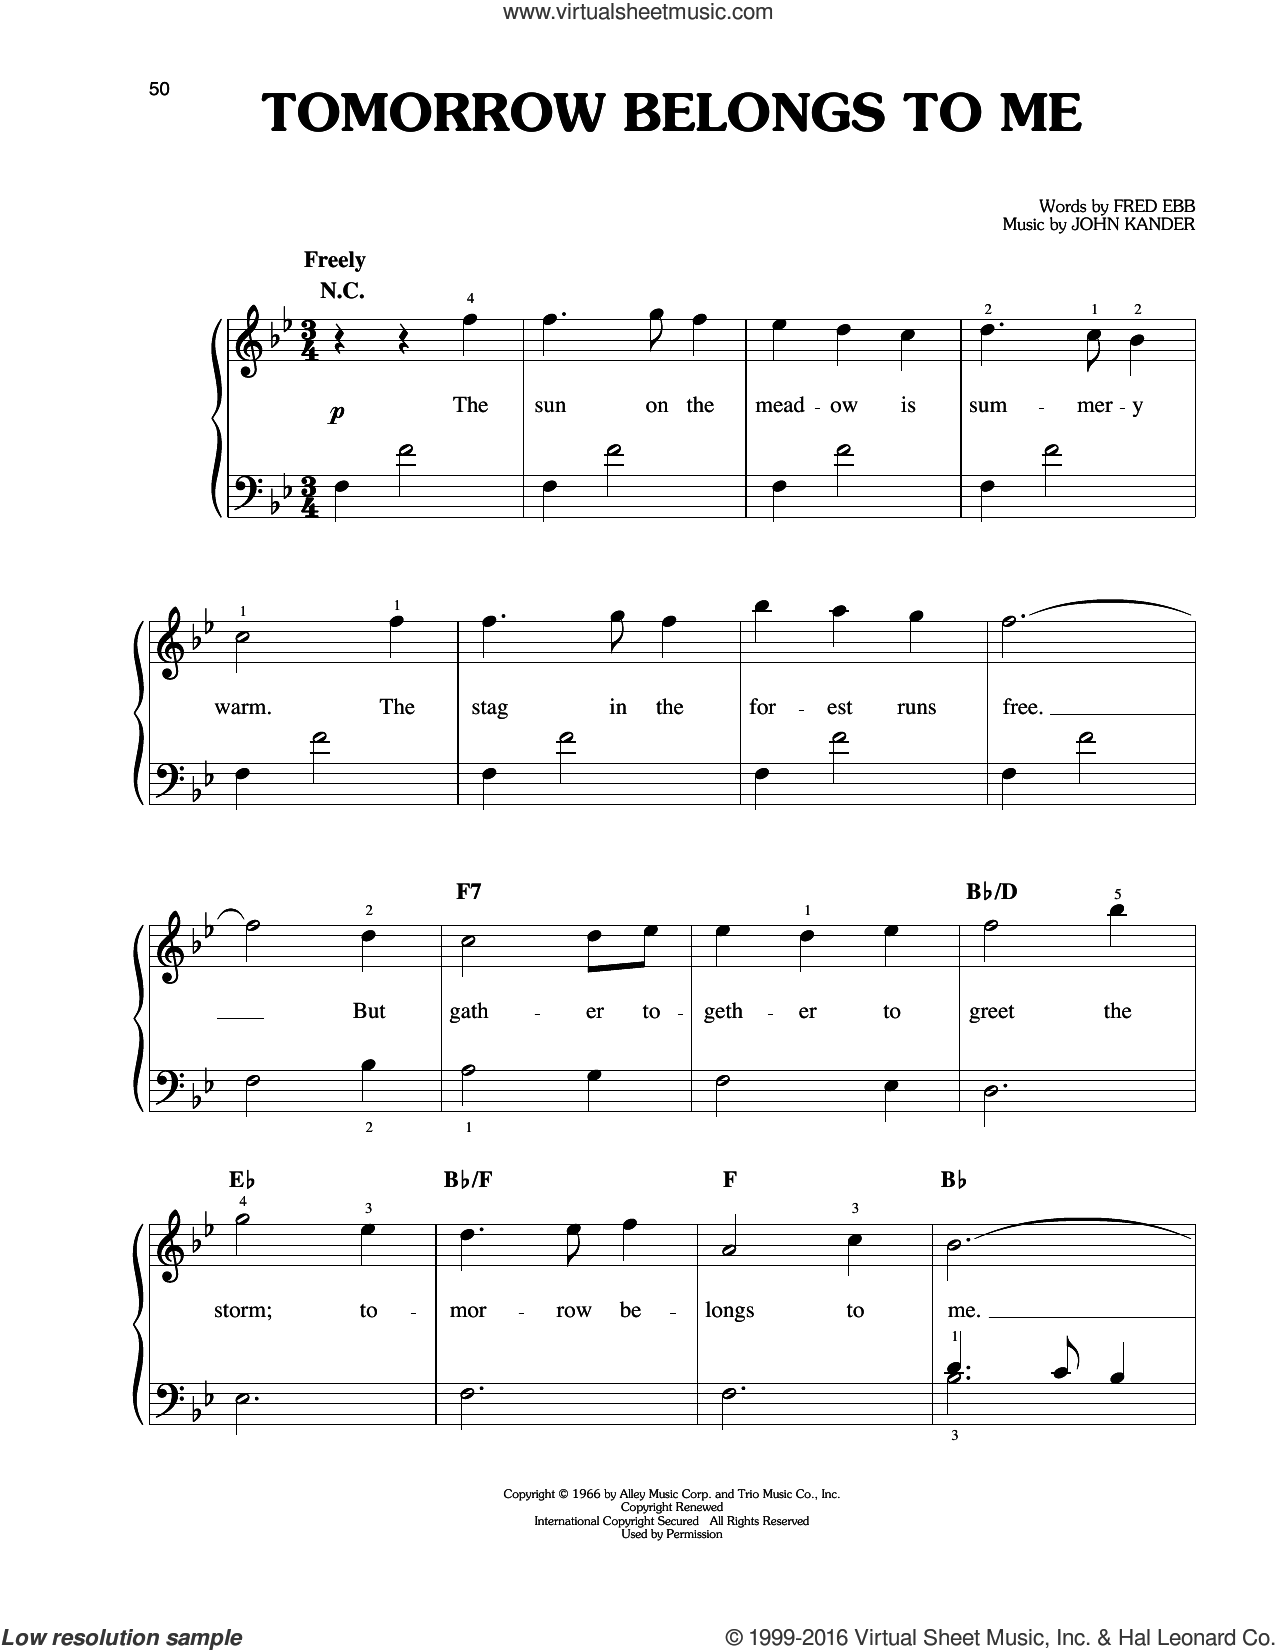 Tomorrow Belongs To Me sheet music for piano solo by John Kander and Fred Ebb, easy piano. Score Image Preview.